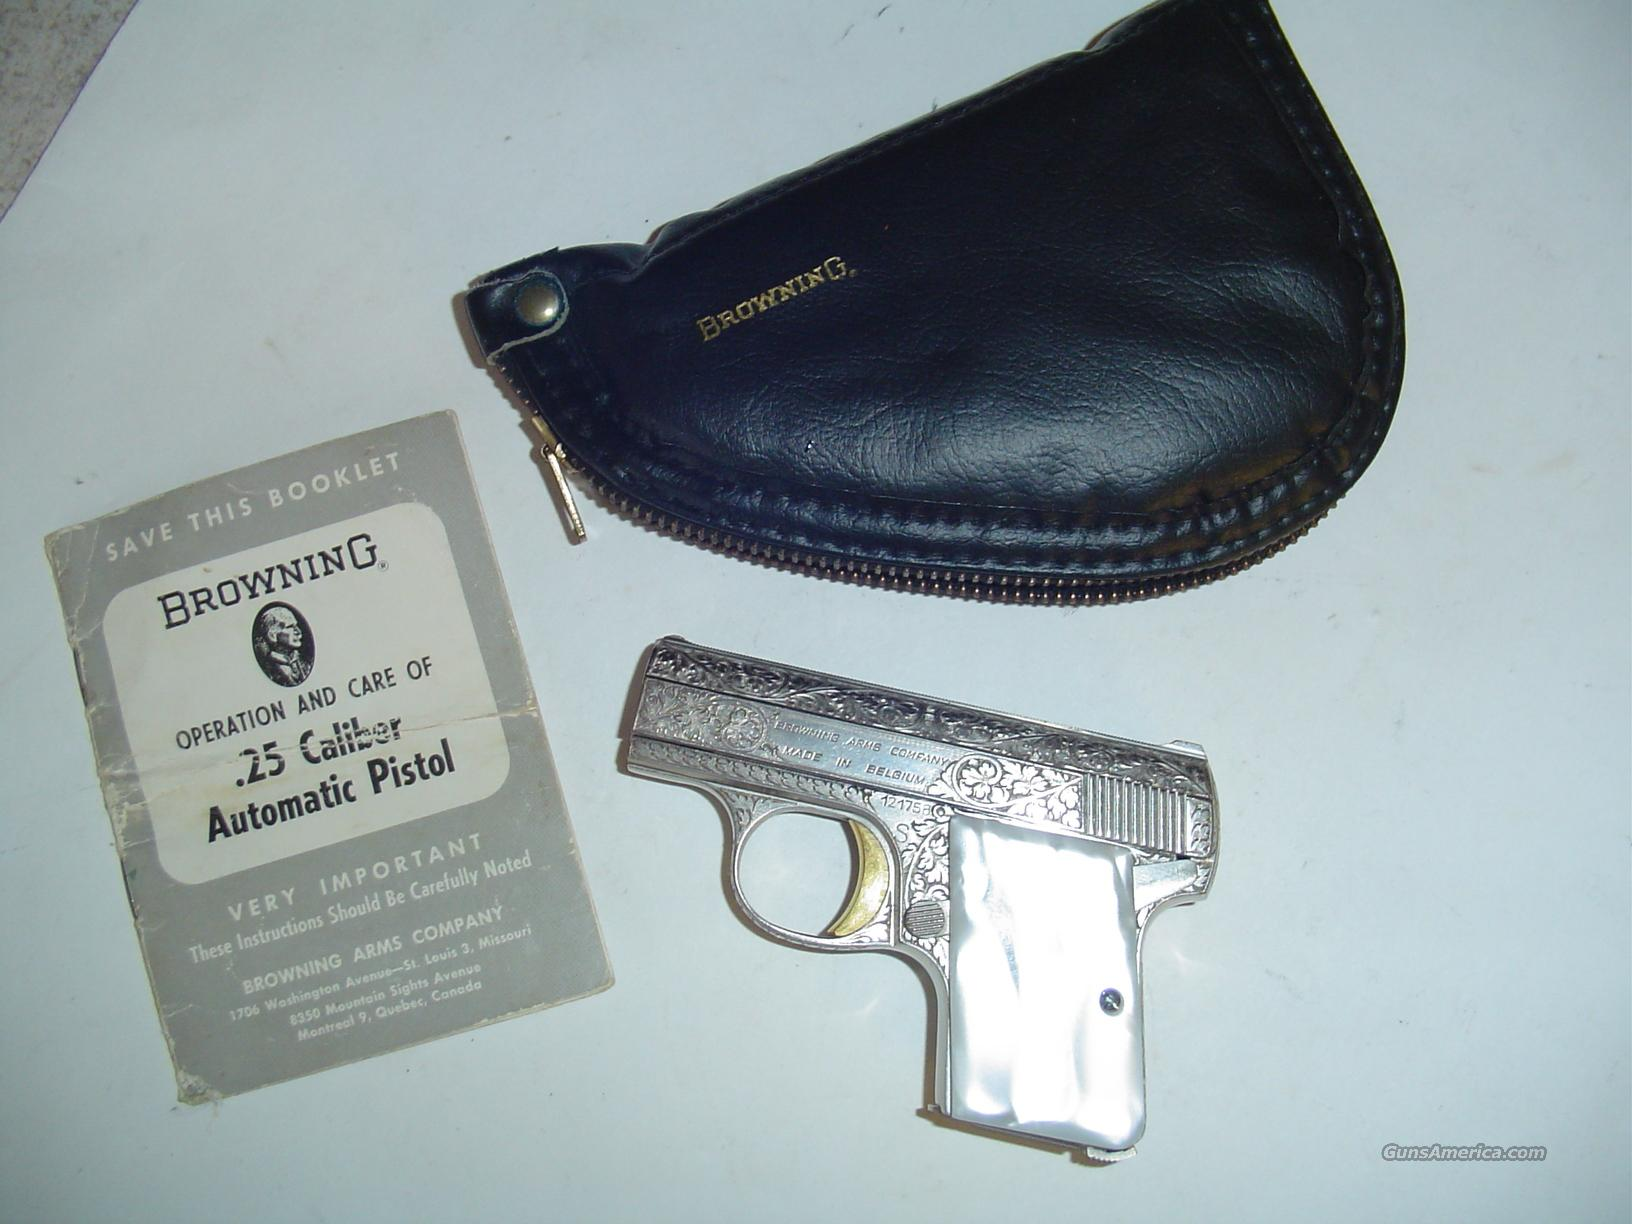 MINT RENAISSANCE BABY BROWNING WITH ORIGINAL LEATHER POUCH AND OWNER'S MANUAL!  Guns > Pistols > Browning Pistols > Baby Browning